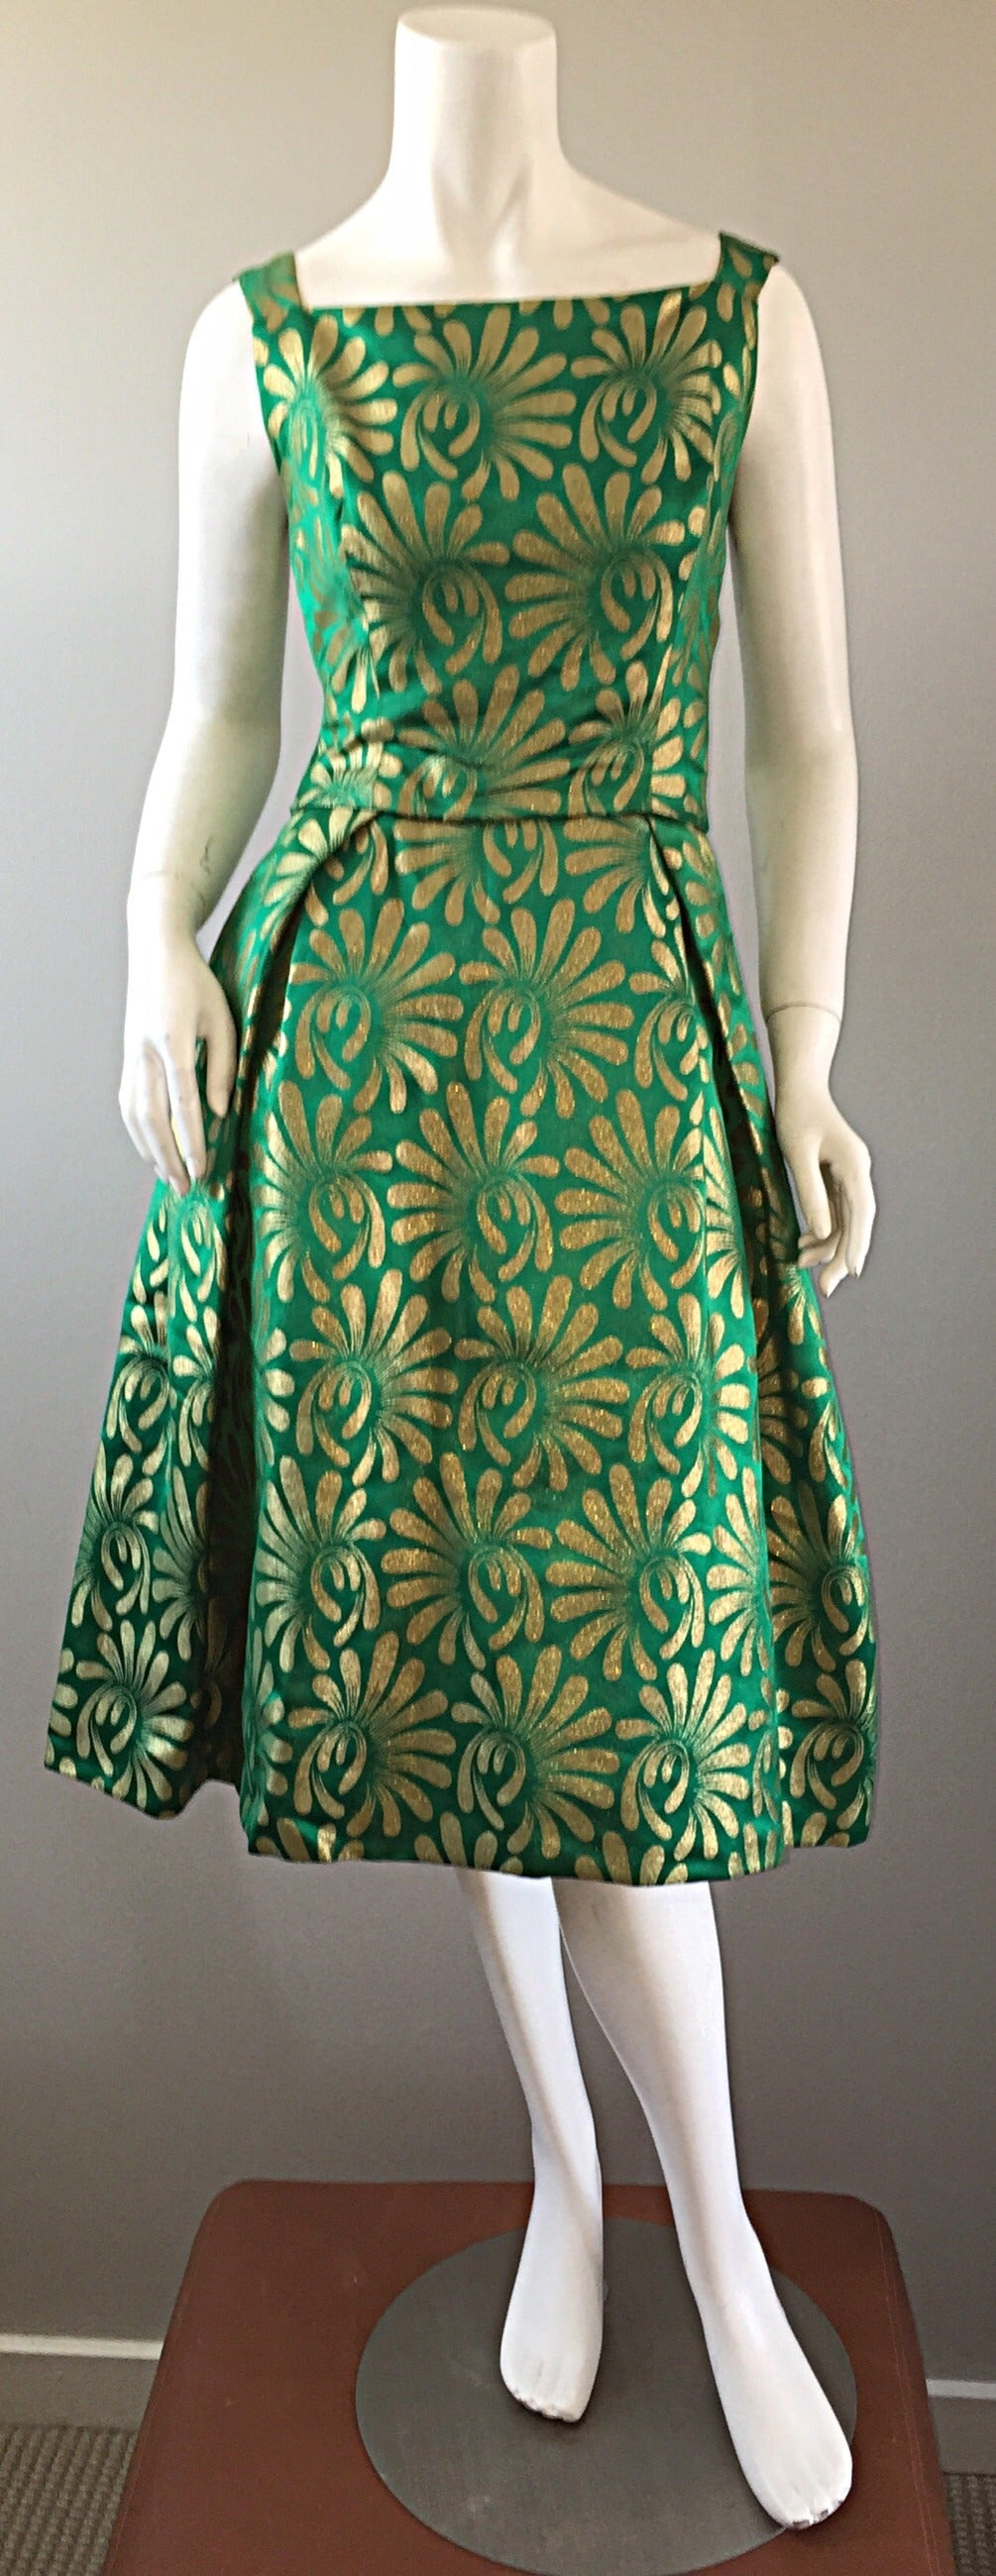 1950s 50s Vintage Blauner for Bonwit Teller Green + Gold ' New Look ' Silk Dress 9